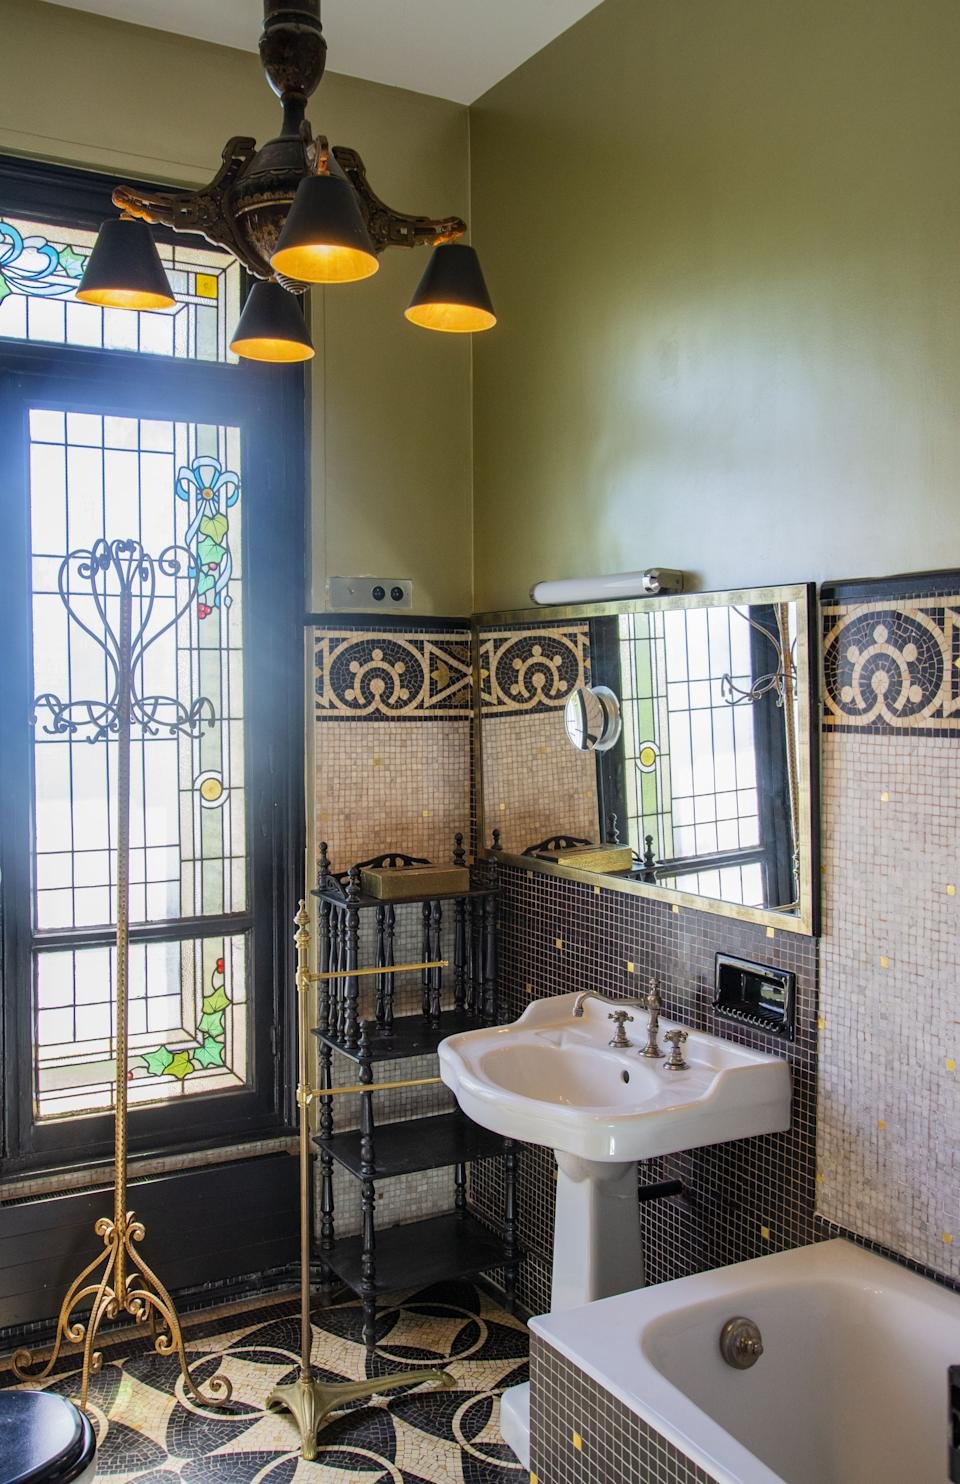 """<div class=""""caption""""> All of the decoration is original to the apartment. On the walls of a bathroom are marble mosaics, and the stained-glass window is early 20th-century. The walls are lacquered paint and the chandelier is 19th-century, found at the flea market in the South of France, L' Isle sur la Sorgue. The coatrack is in gilded iron, circa 1950, by Italian designer Pier Luigi Colli. </div>"""